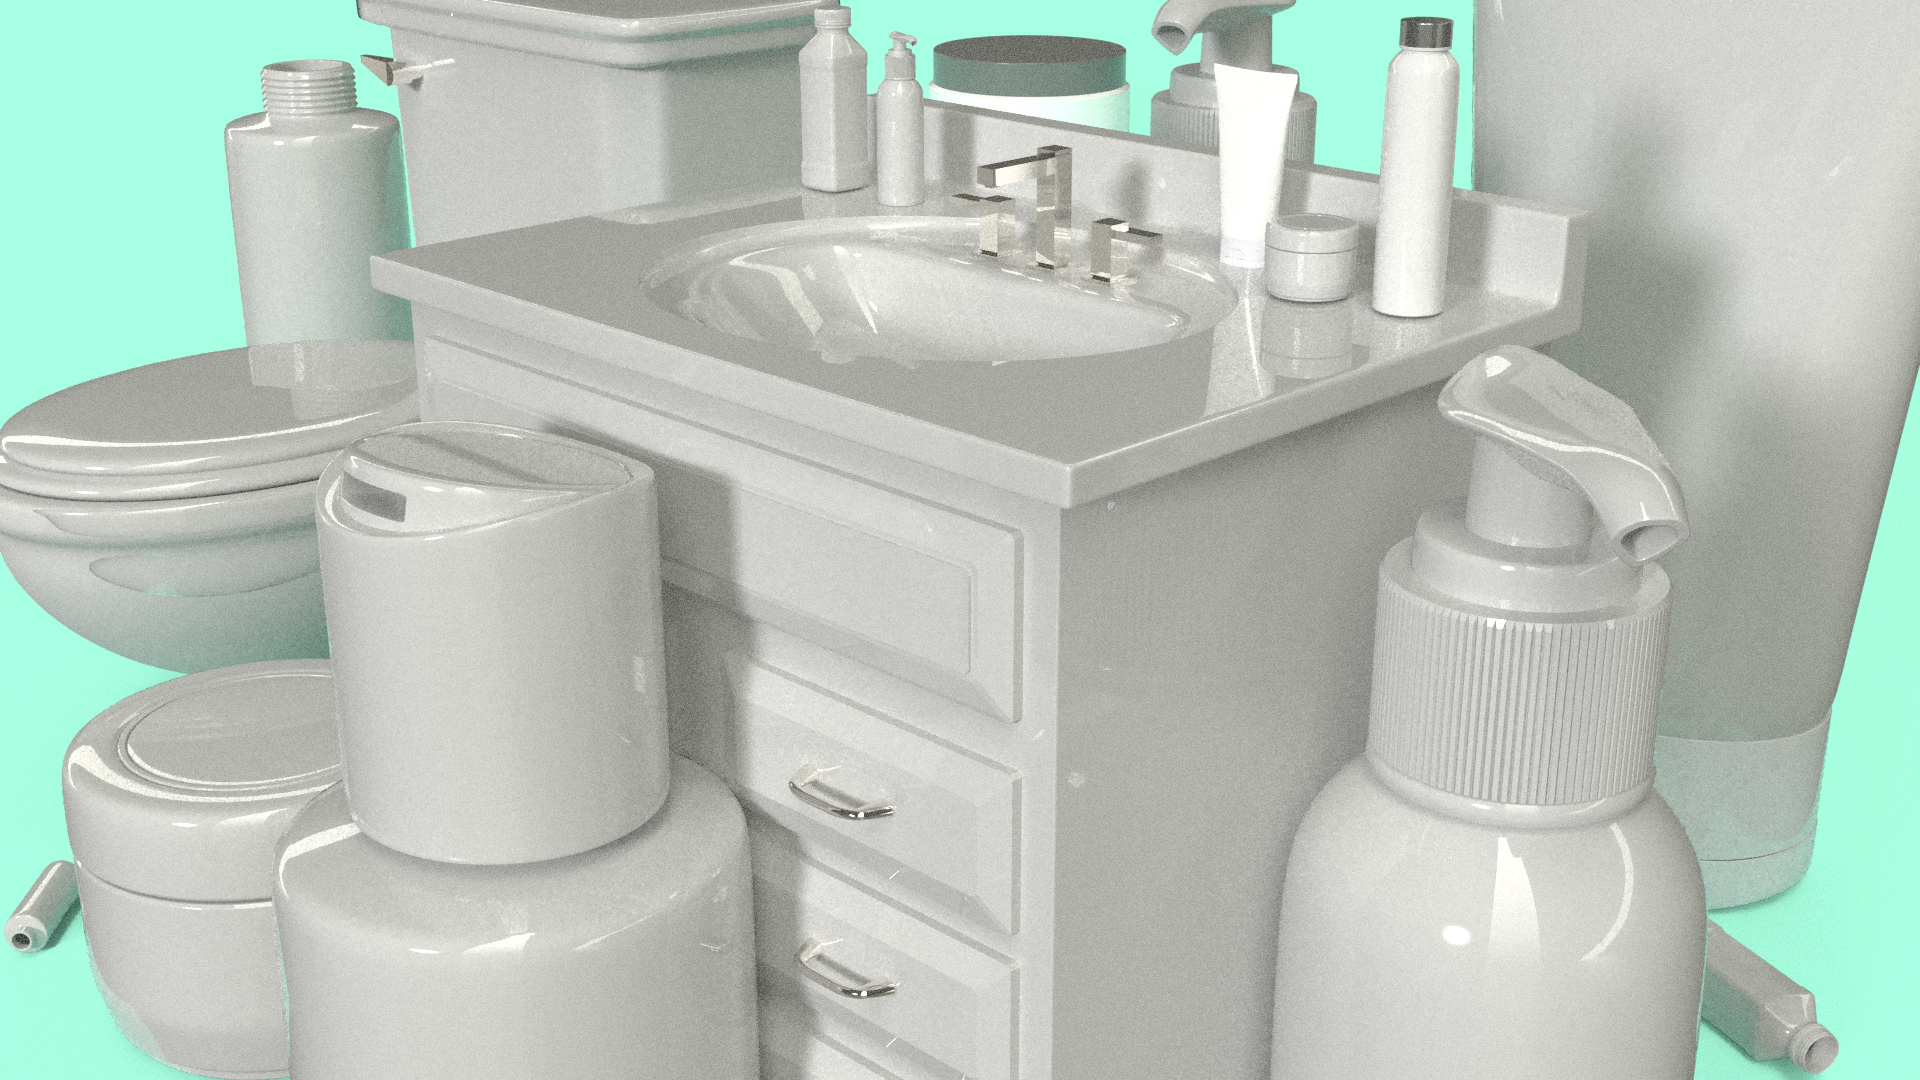 The anti-plastic movement is coming for your bathroom